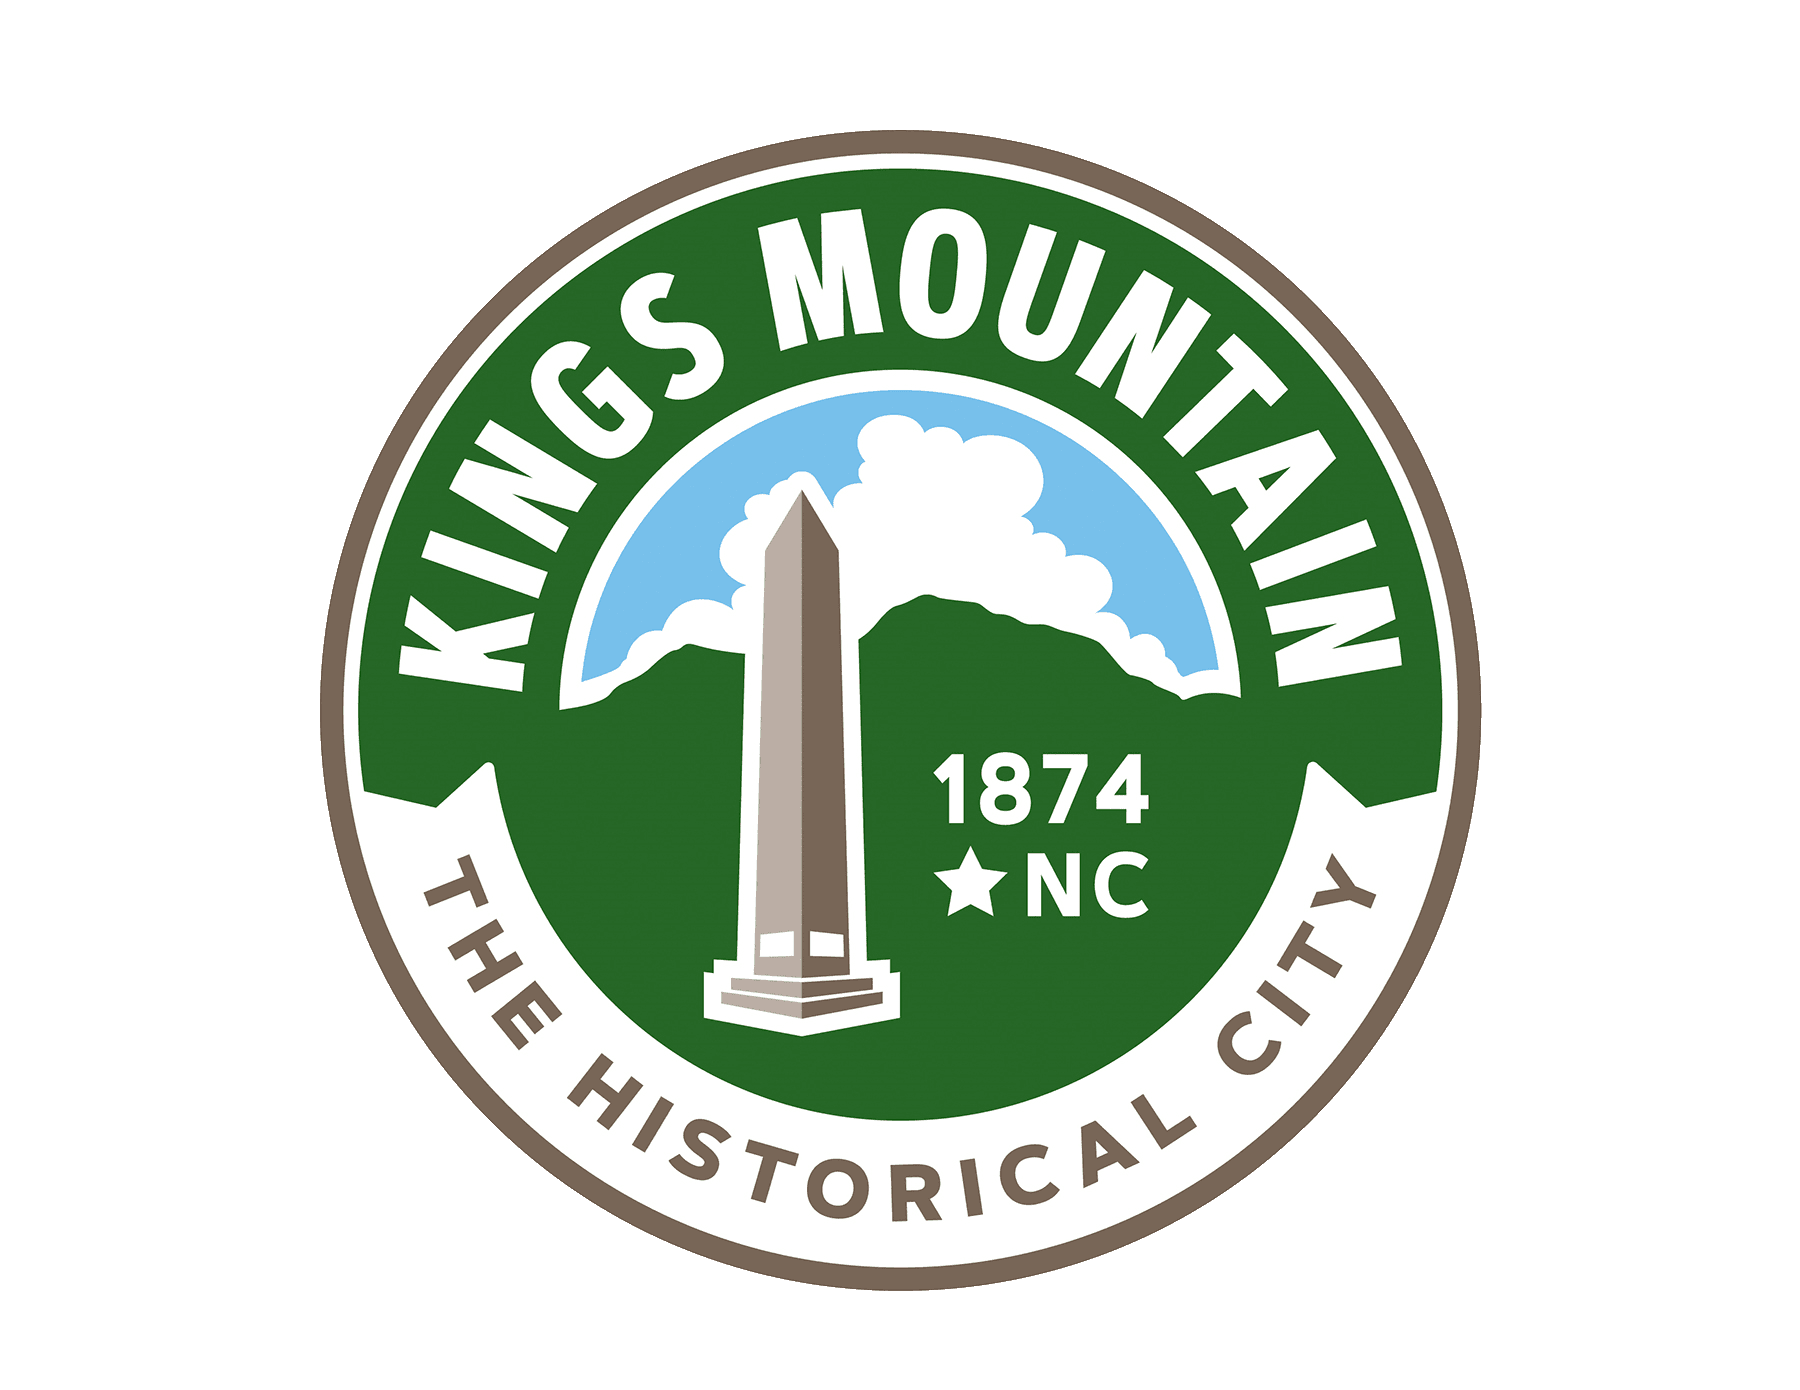 kingsmountain seal large clear small